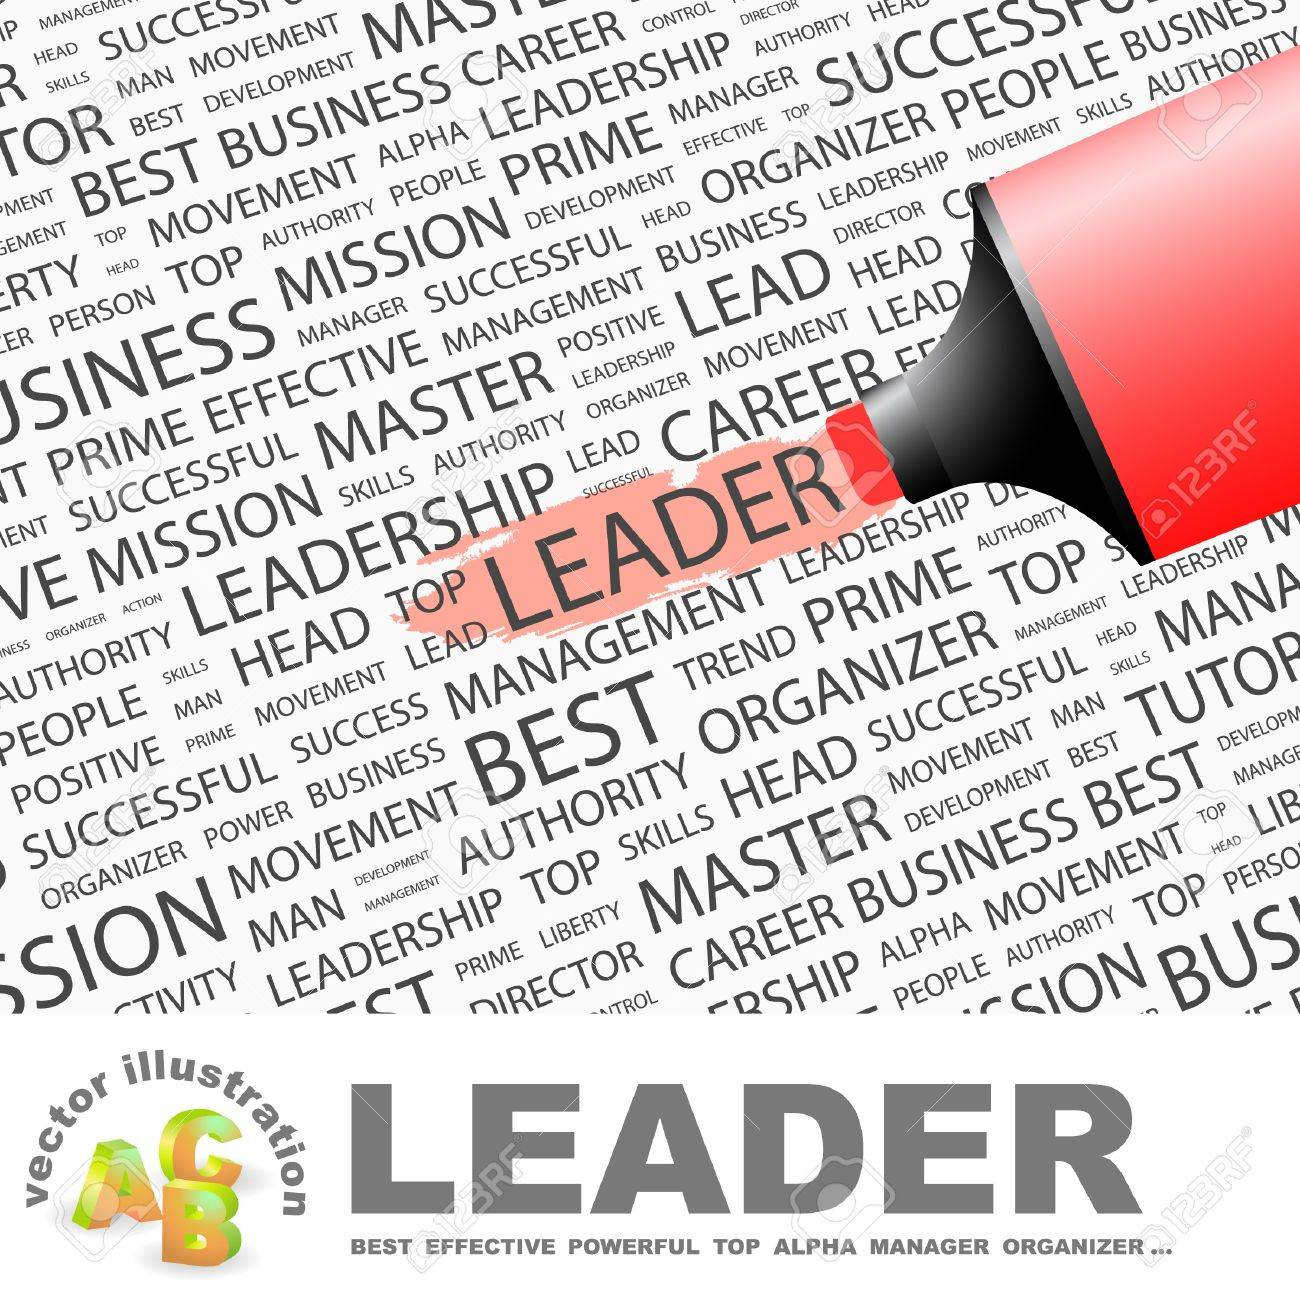 LEADER. Highlighter over background with different association terms. Vector illustration. Stock Vector - 9409307